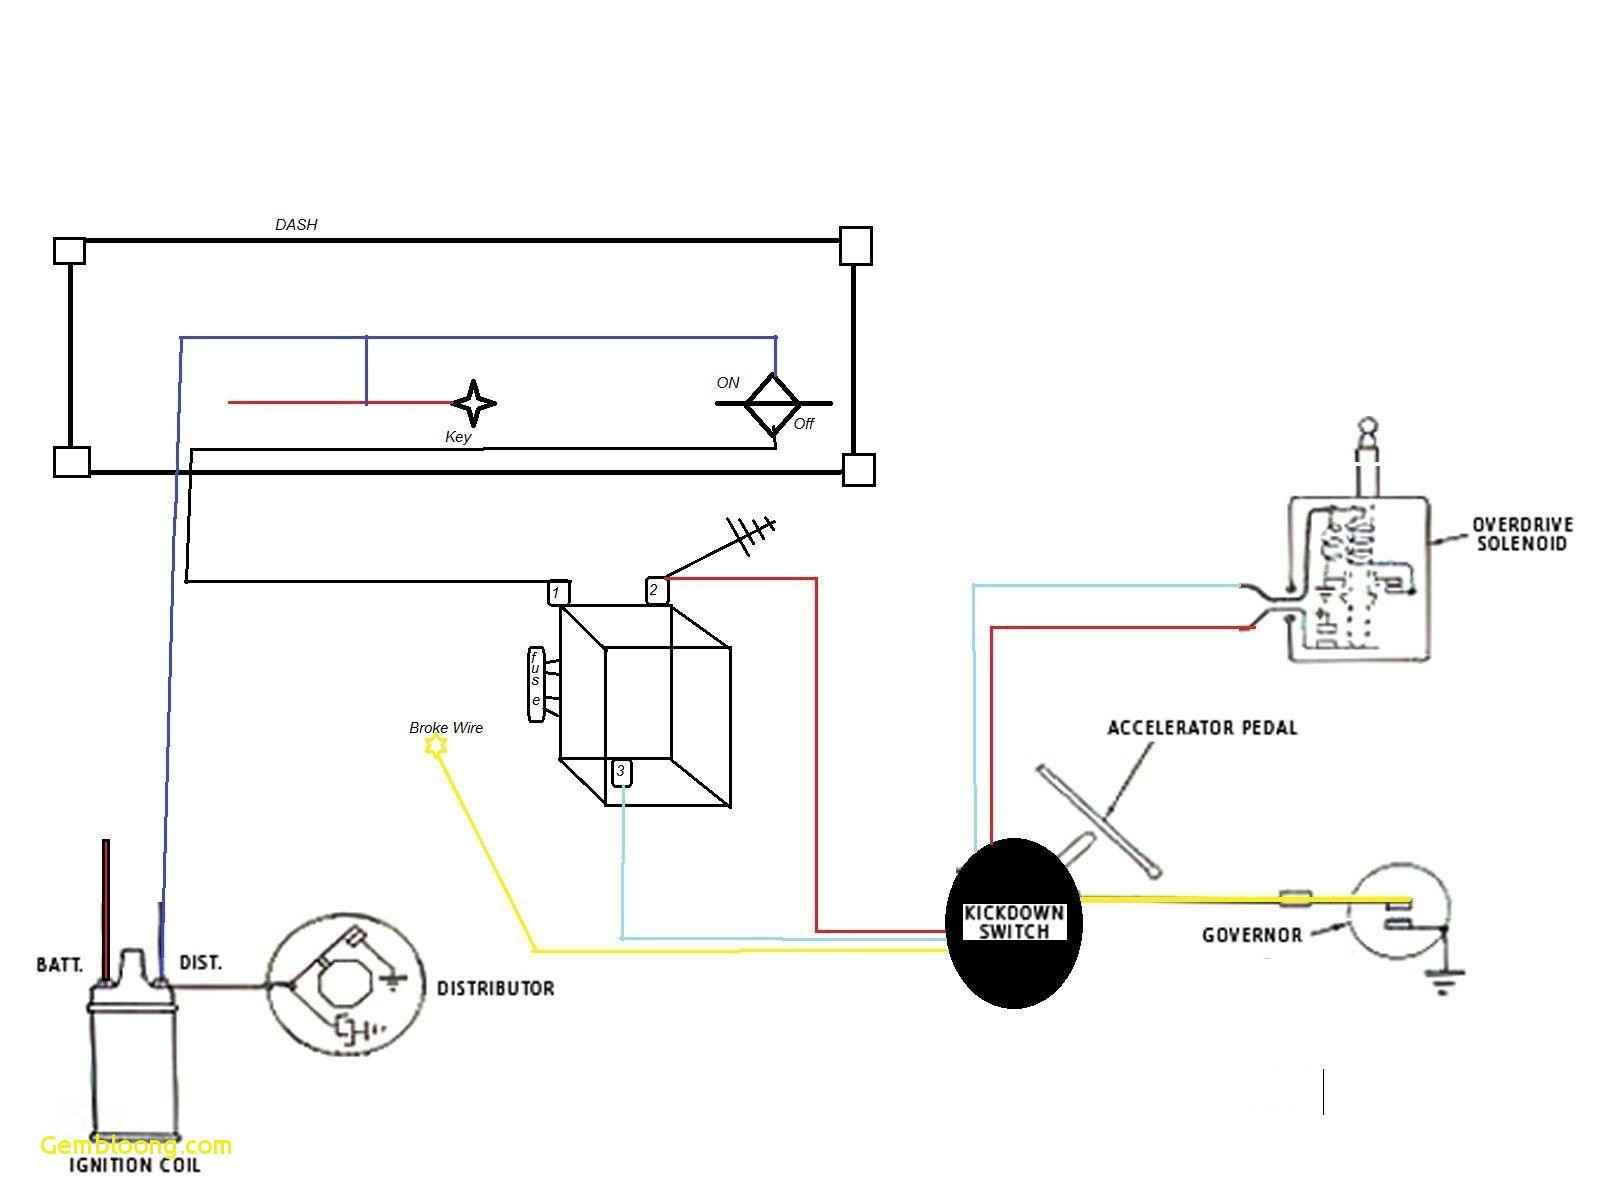 1986 Wire Digram ford Ignition Module 8c42 Accelerator Pedal Wiring Diagram Volvo Of 1986 Wire Digram ford Ignition Module